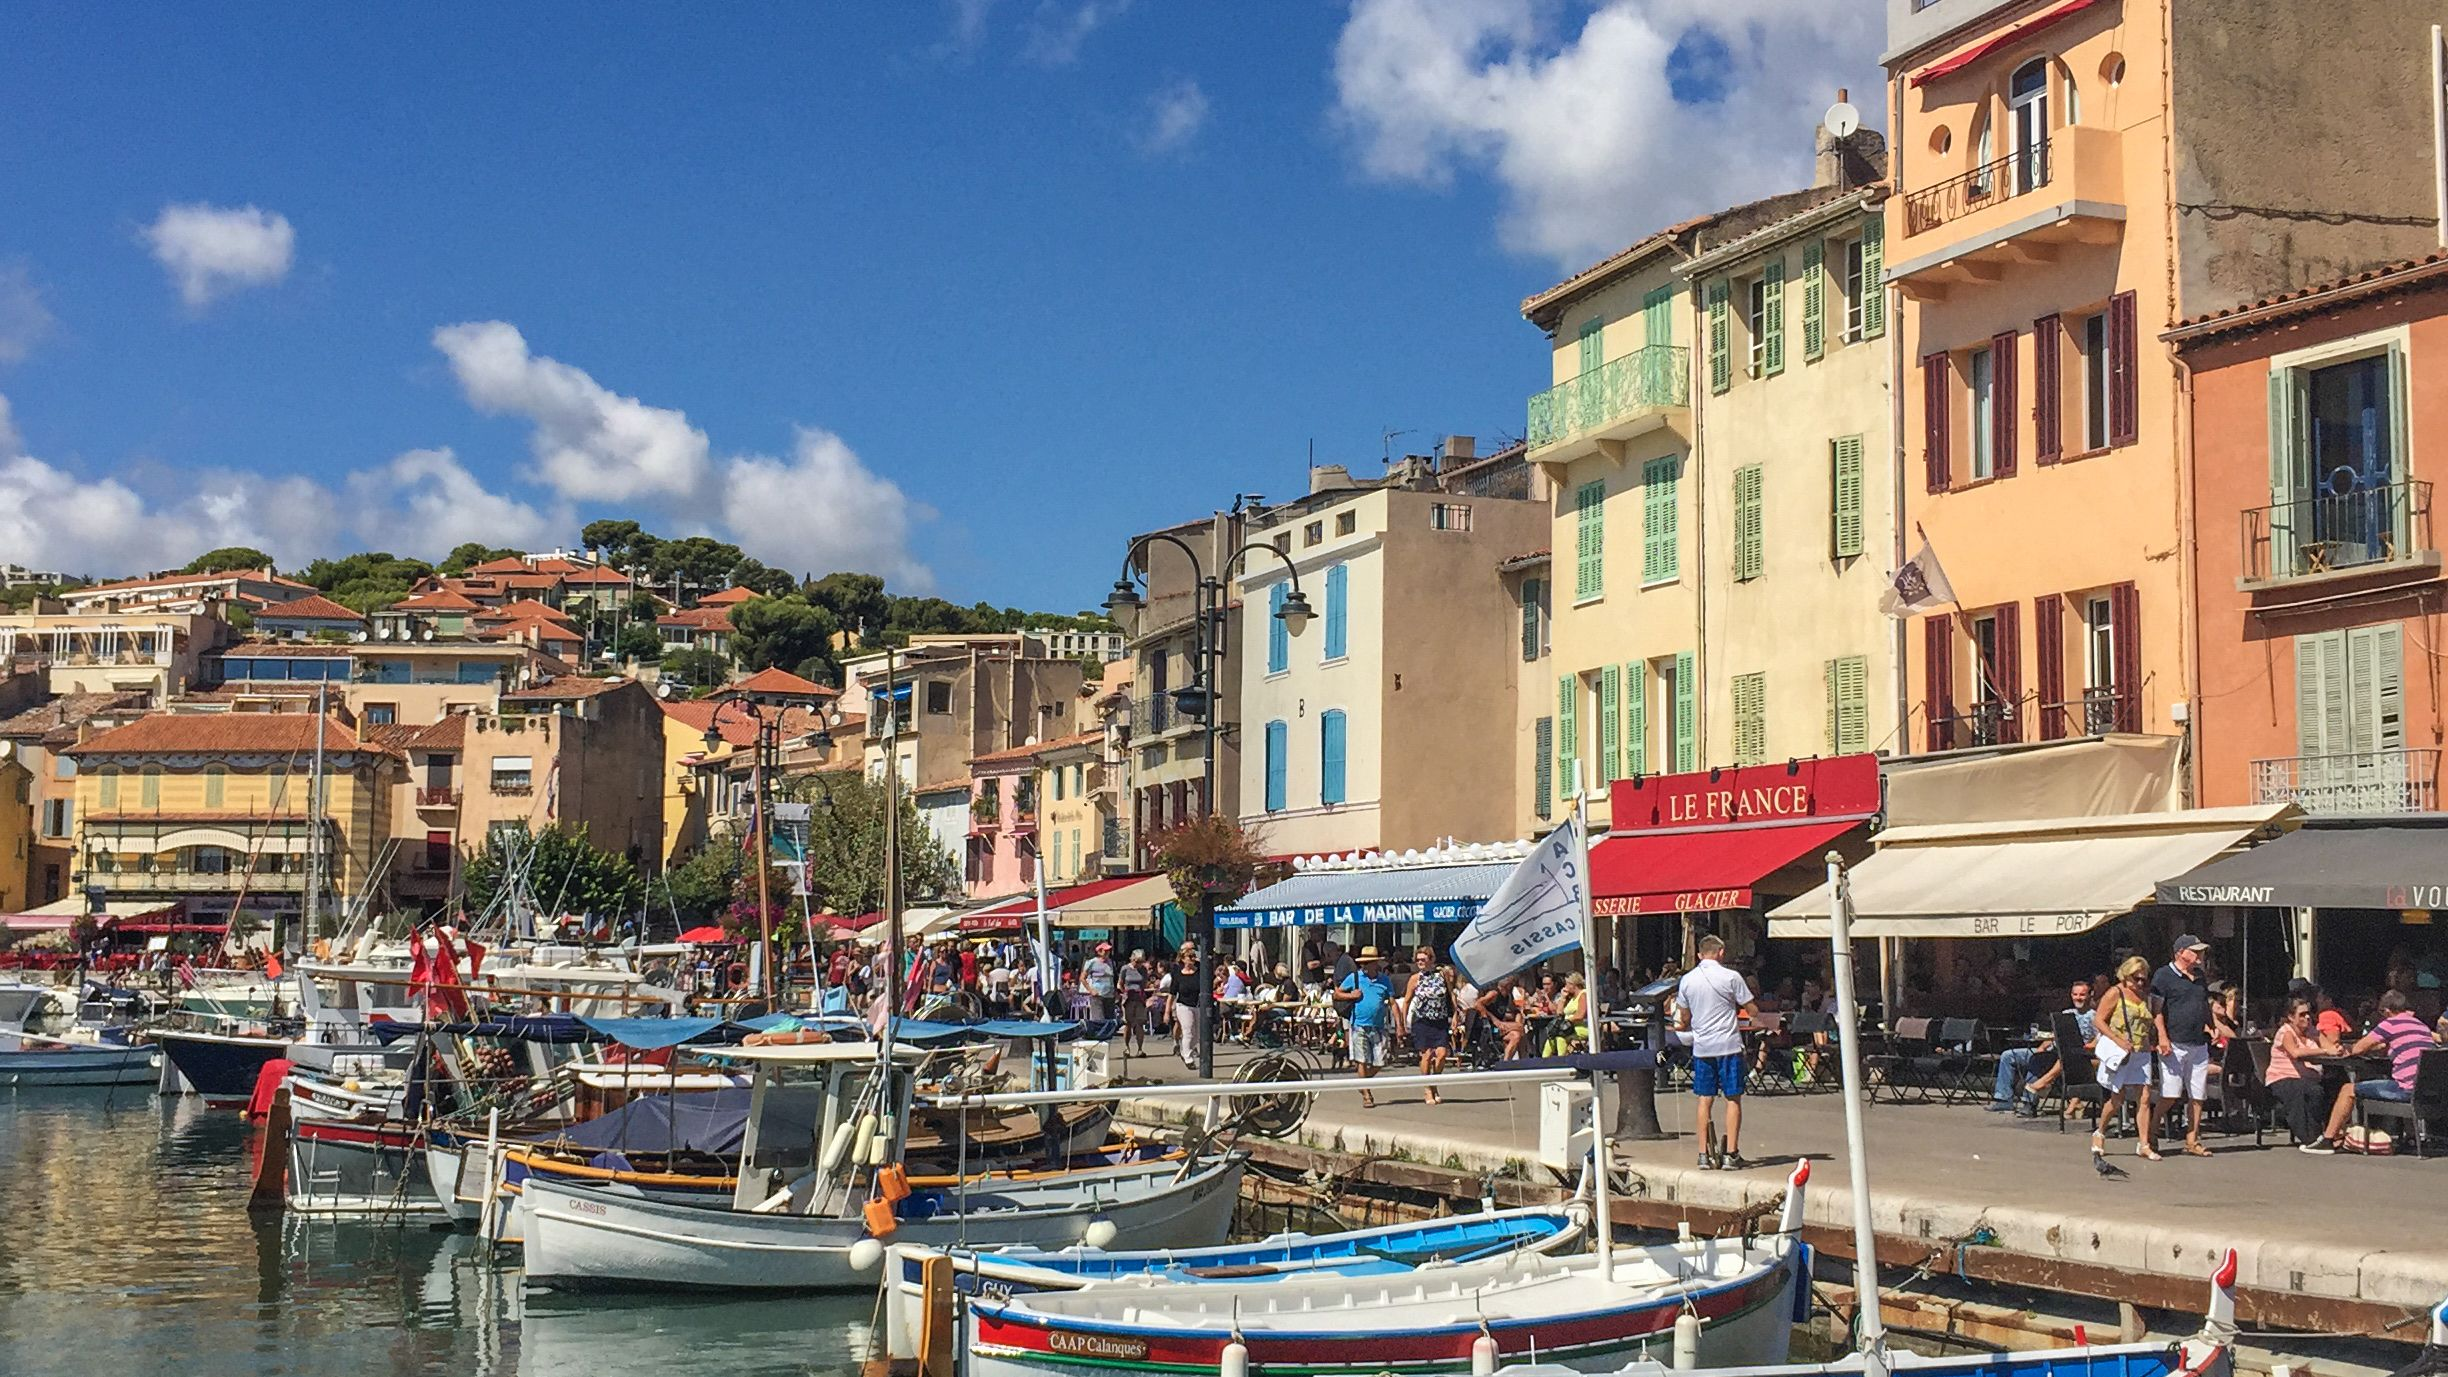 View of Cassis with several docked boats and shops in the distance.